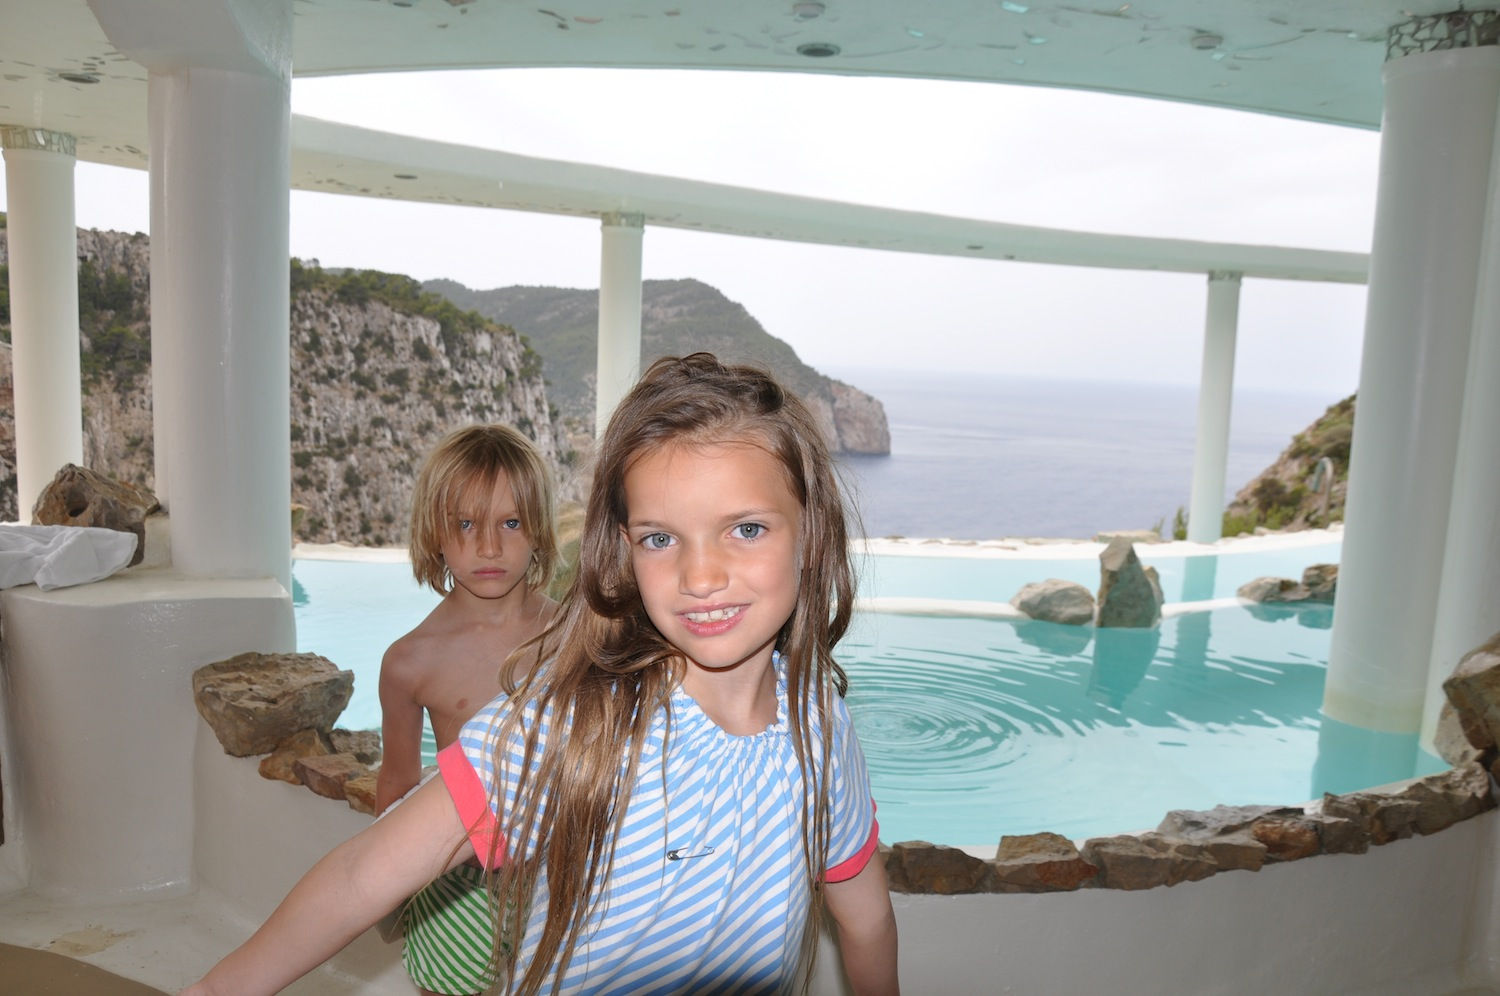 Mini_Rodini_Louie_louis_spa_Hacienda_Ibiza